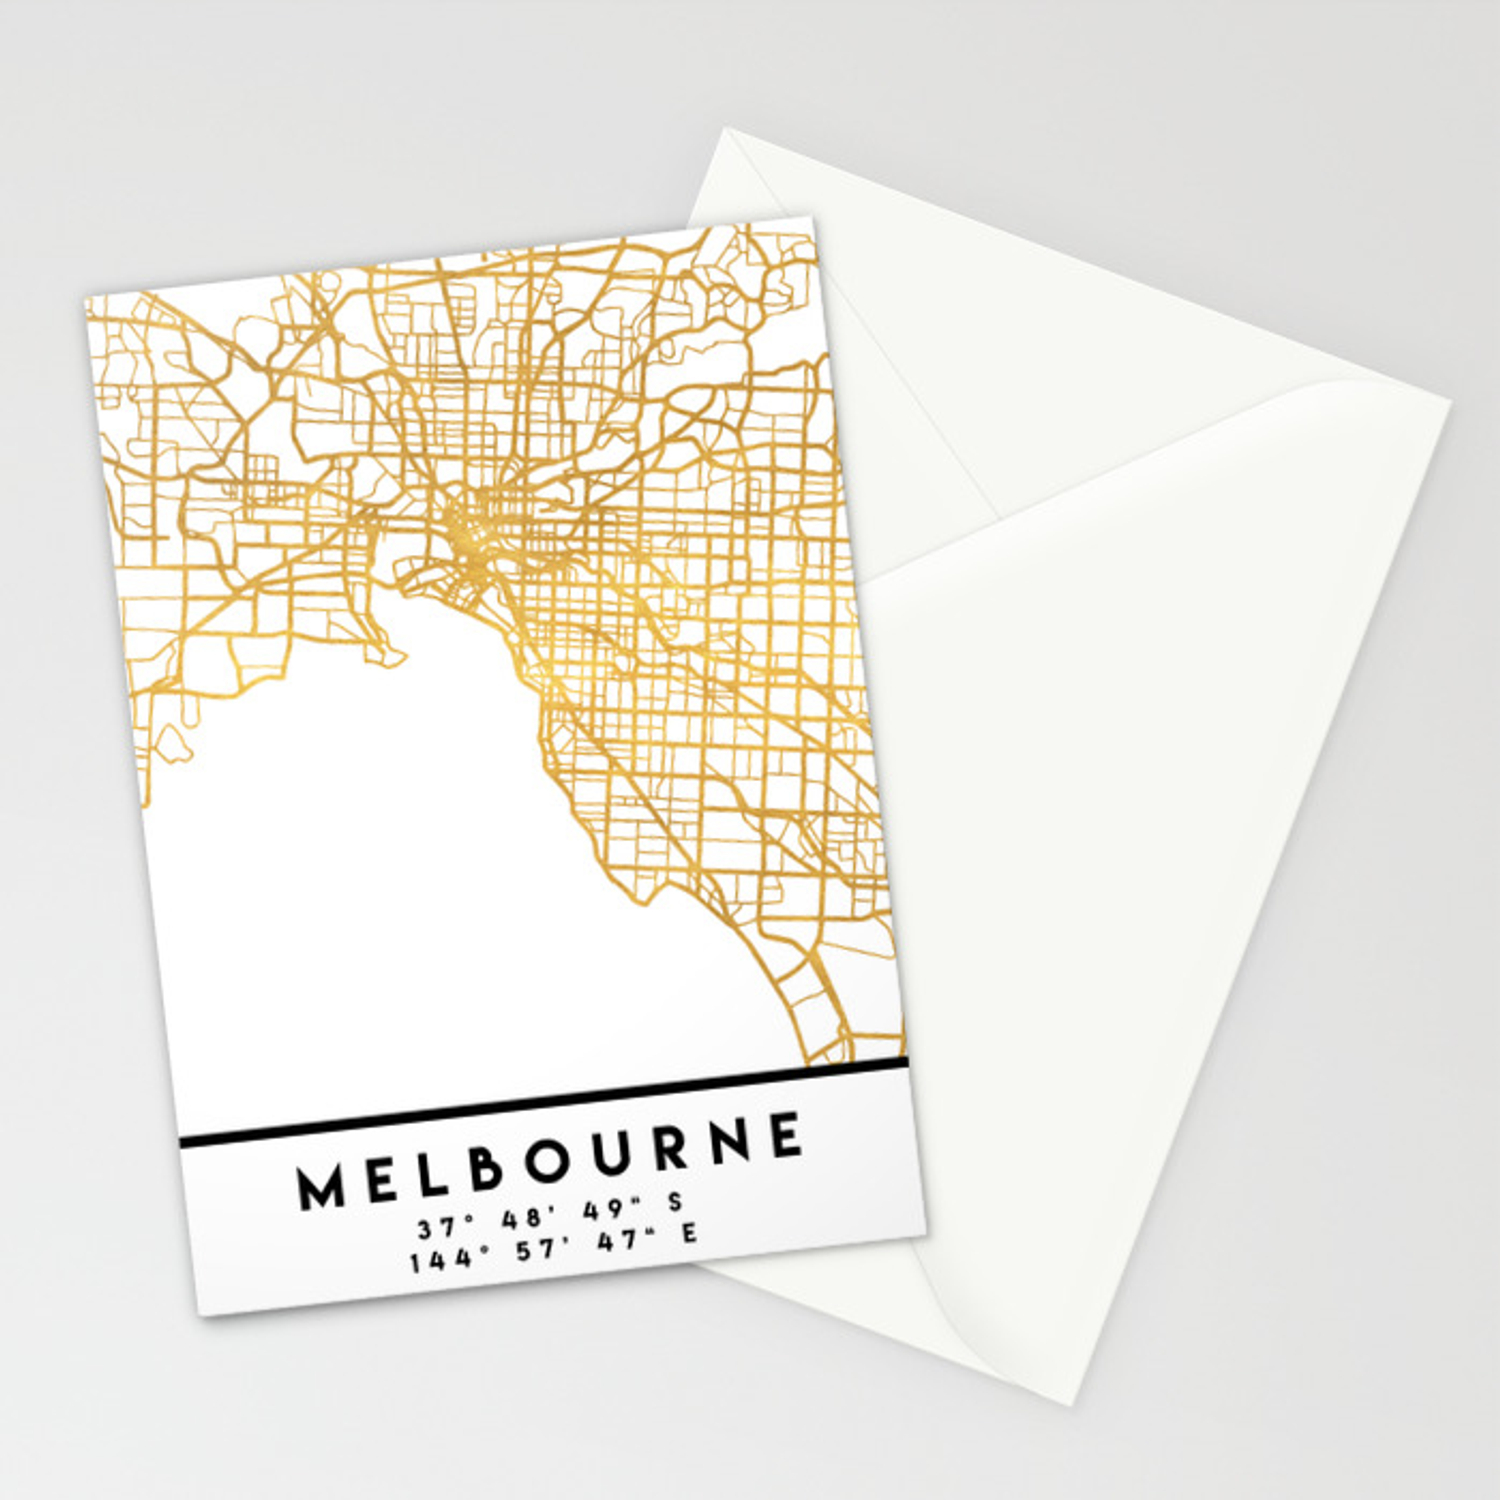 Melbourne Australia On A Map.Melbourne Australia City Street Map Art Stationery Cards By Deificusart